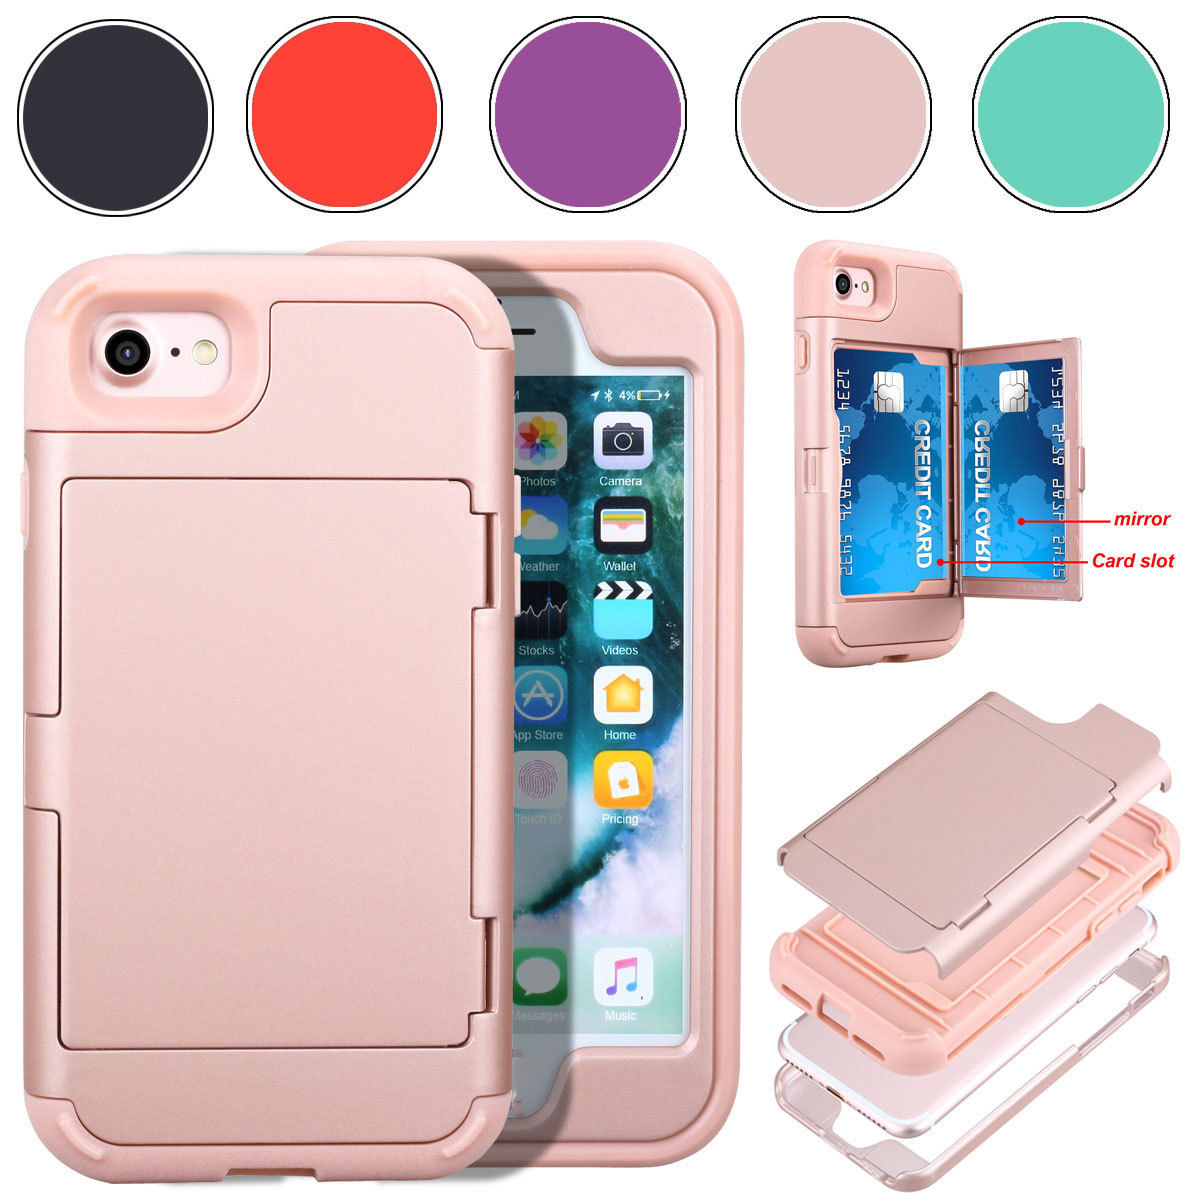 brand new d1da3 a764c [Hot Item] Best Quality Cell Phone Case Mirror Cover Hard with Stand for  iPhone 7/7p